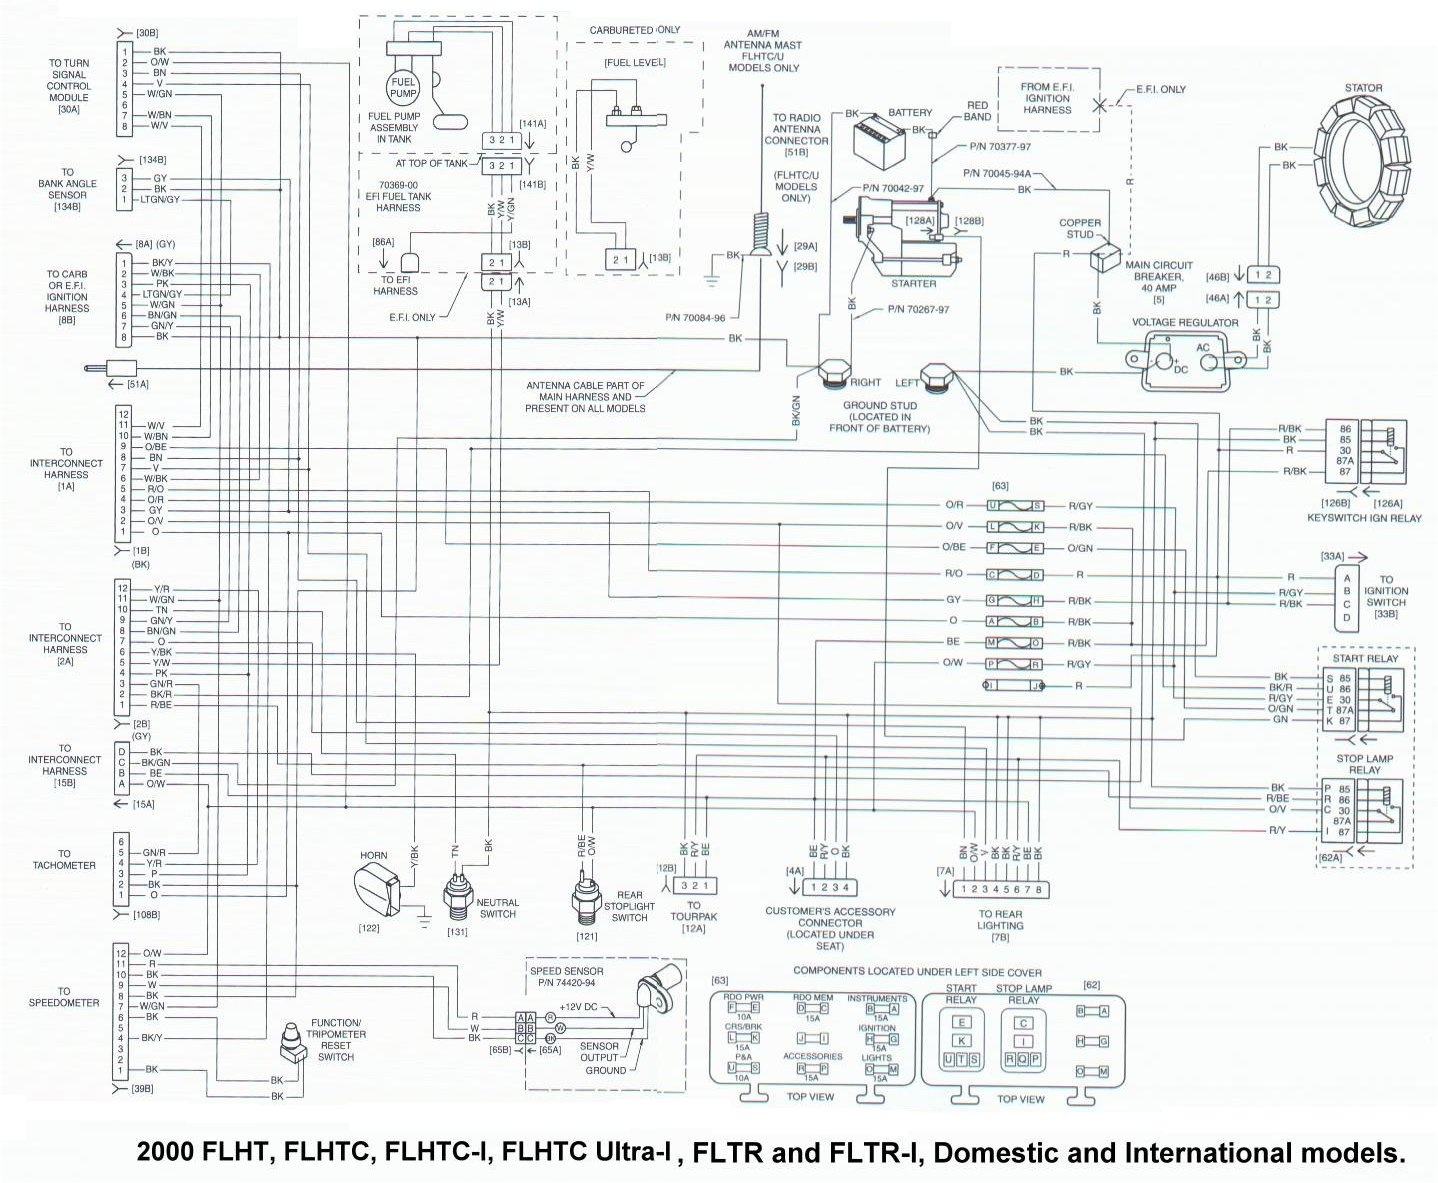 [DIAGRAM_38IS]  92 Sportster Wiring Diagram Fuse Box In Audi A6 2006 -  power-pole.pisang-panjang2.astrea-construction.fr | 2007 Sportster Wiring Diagram |  | Begeboy Wiring Diagram Source - ASTREA CONSTRUCTION